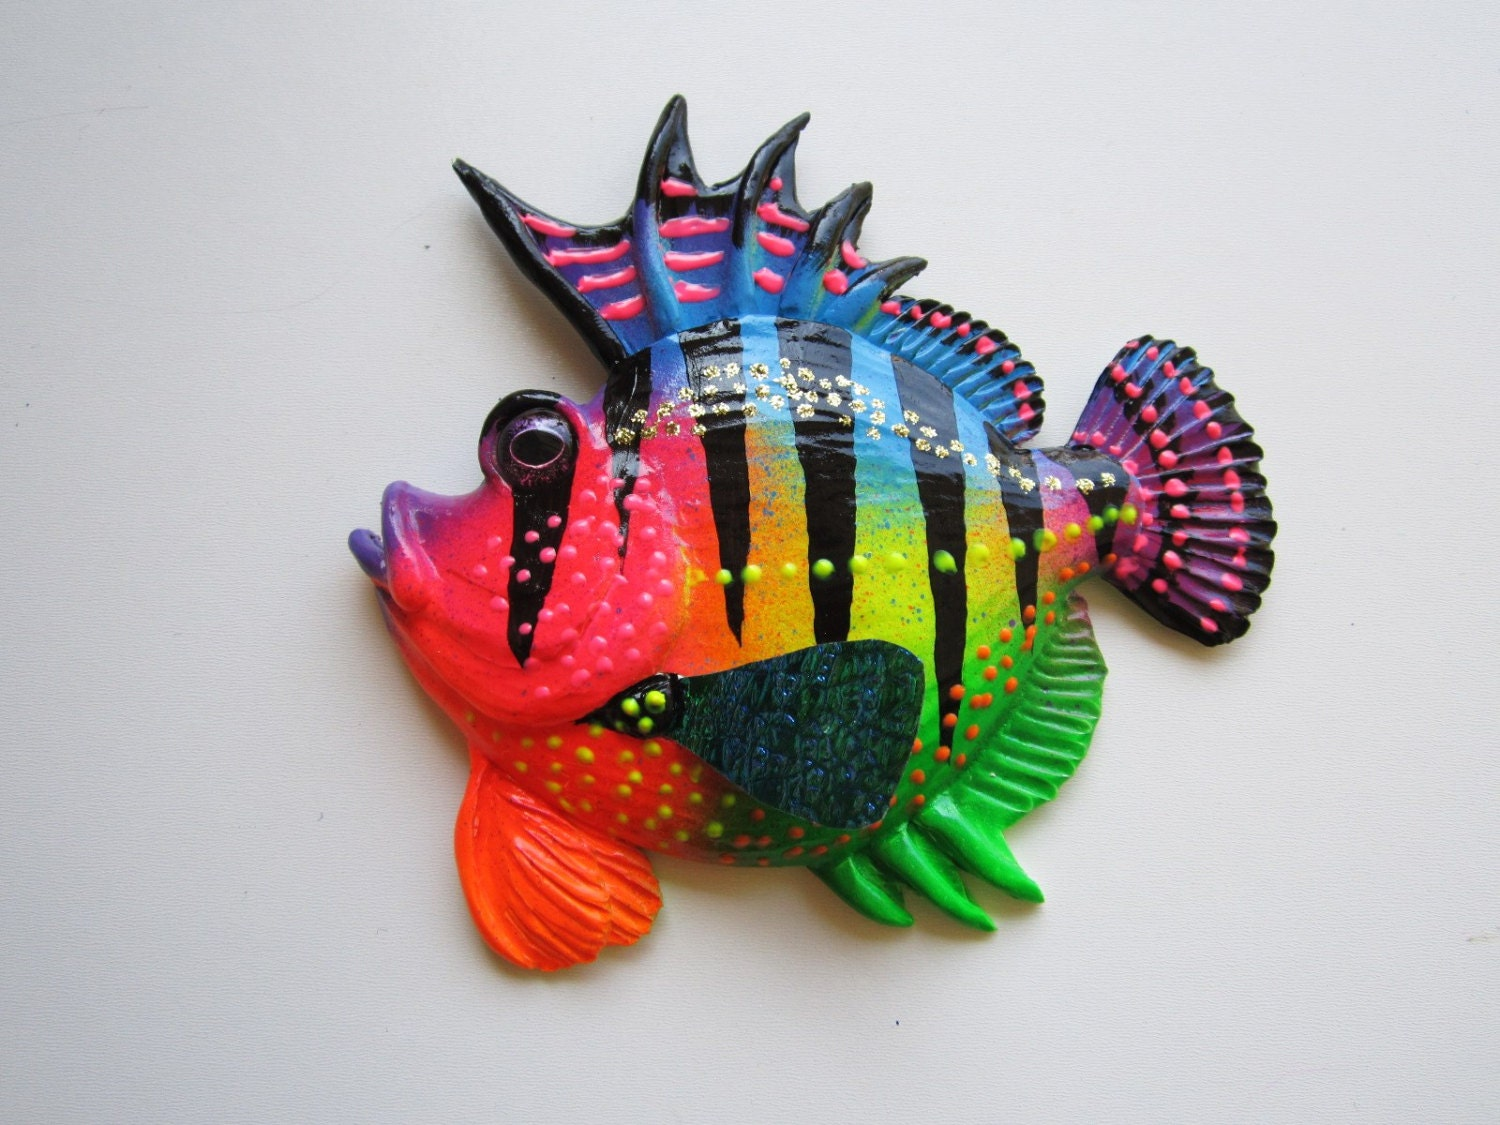 Wall Decor With Fish : Whimsical fish home wall decor art sculpture